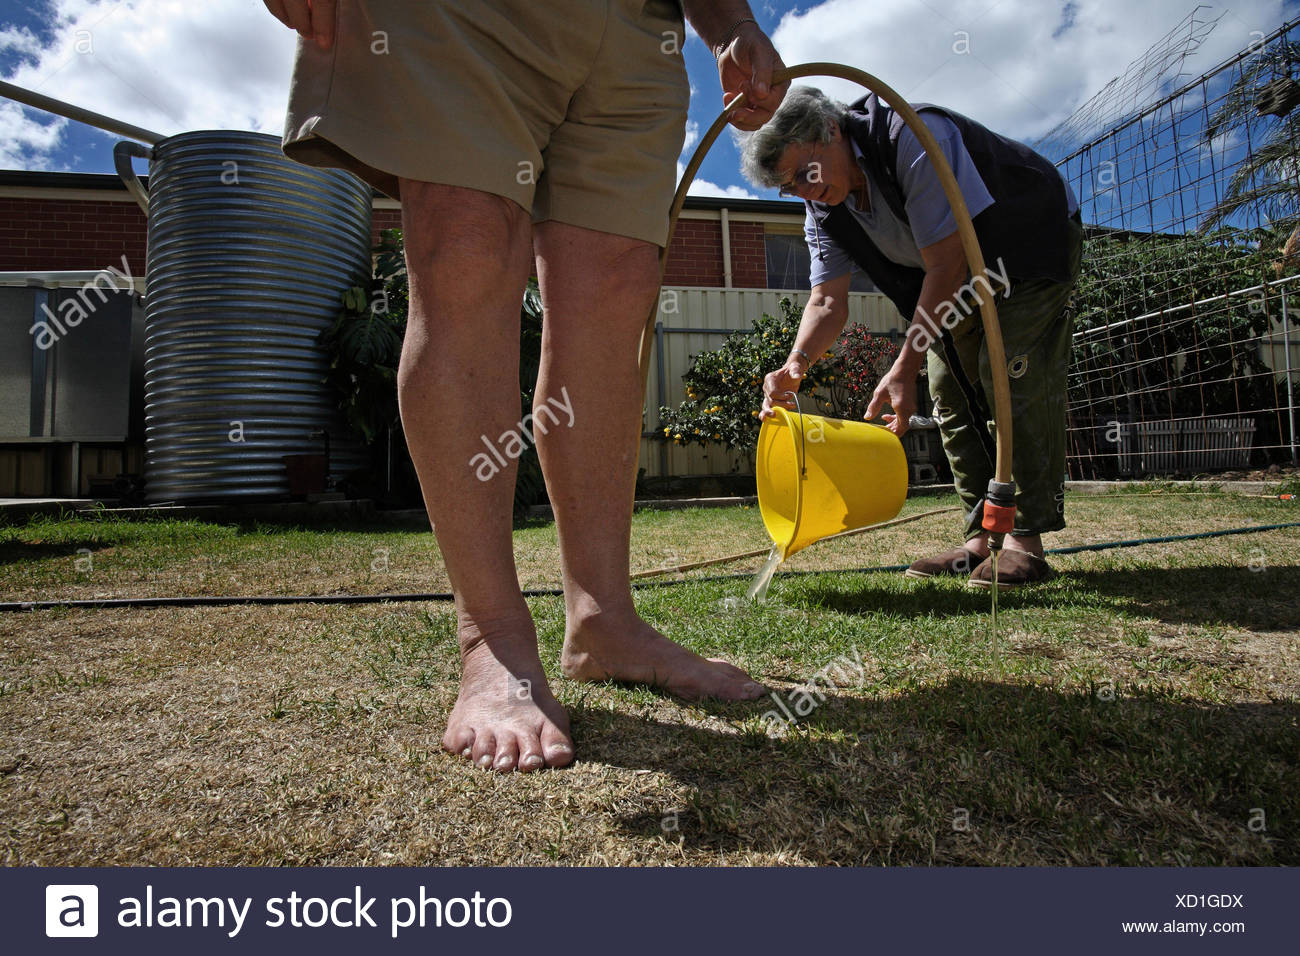 To conserve water during a drought, a couple re-uses their bath water on their lawn. - Stock Image